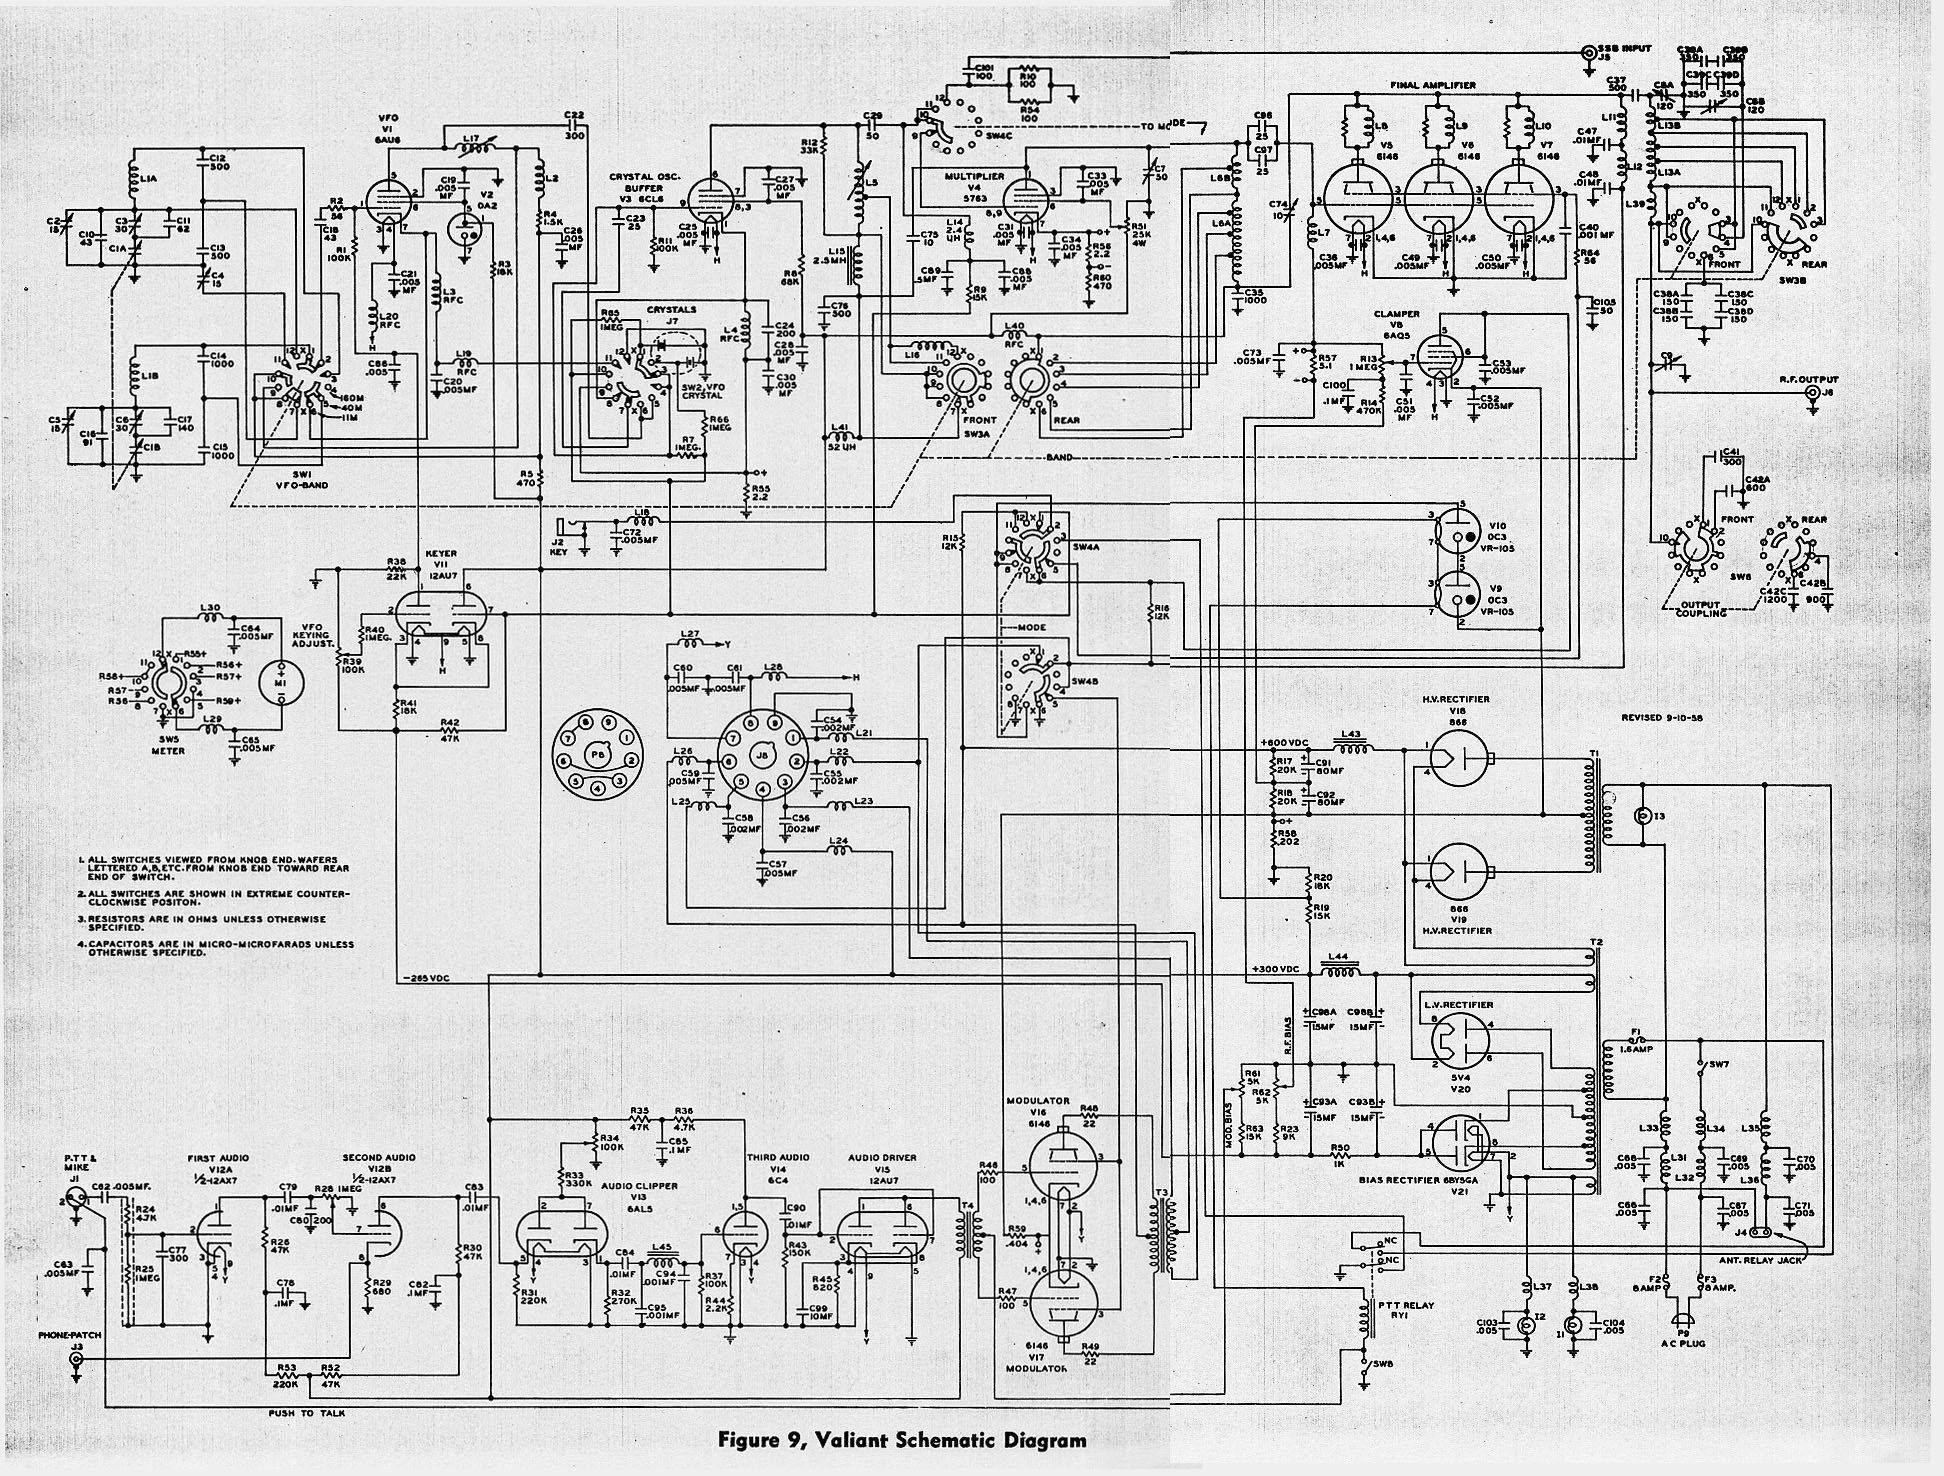 radio_Johnson_Viking_Valiant_schematic viking wiring diagrams light wiring diagram \u2022 free wiring diagrams Simple Wiring Schematics at fashall.co